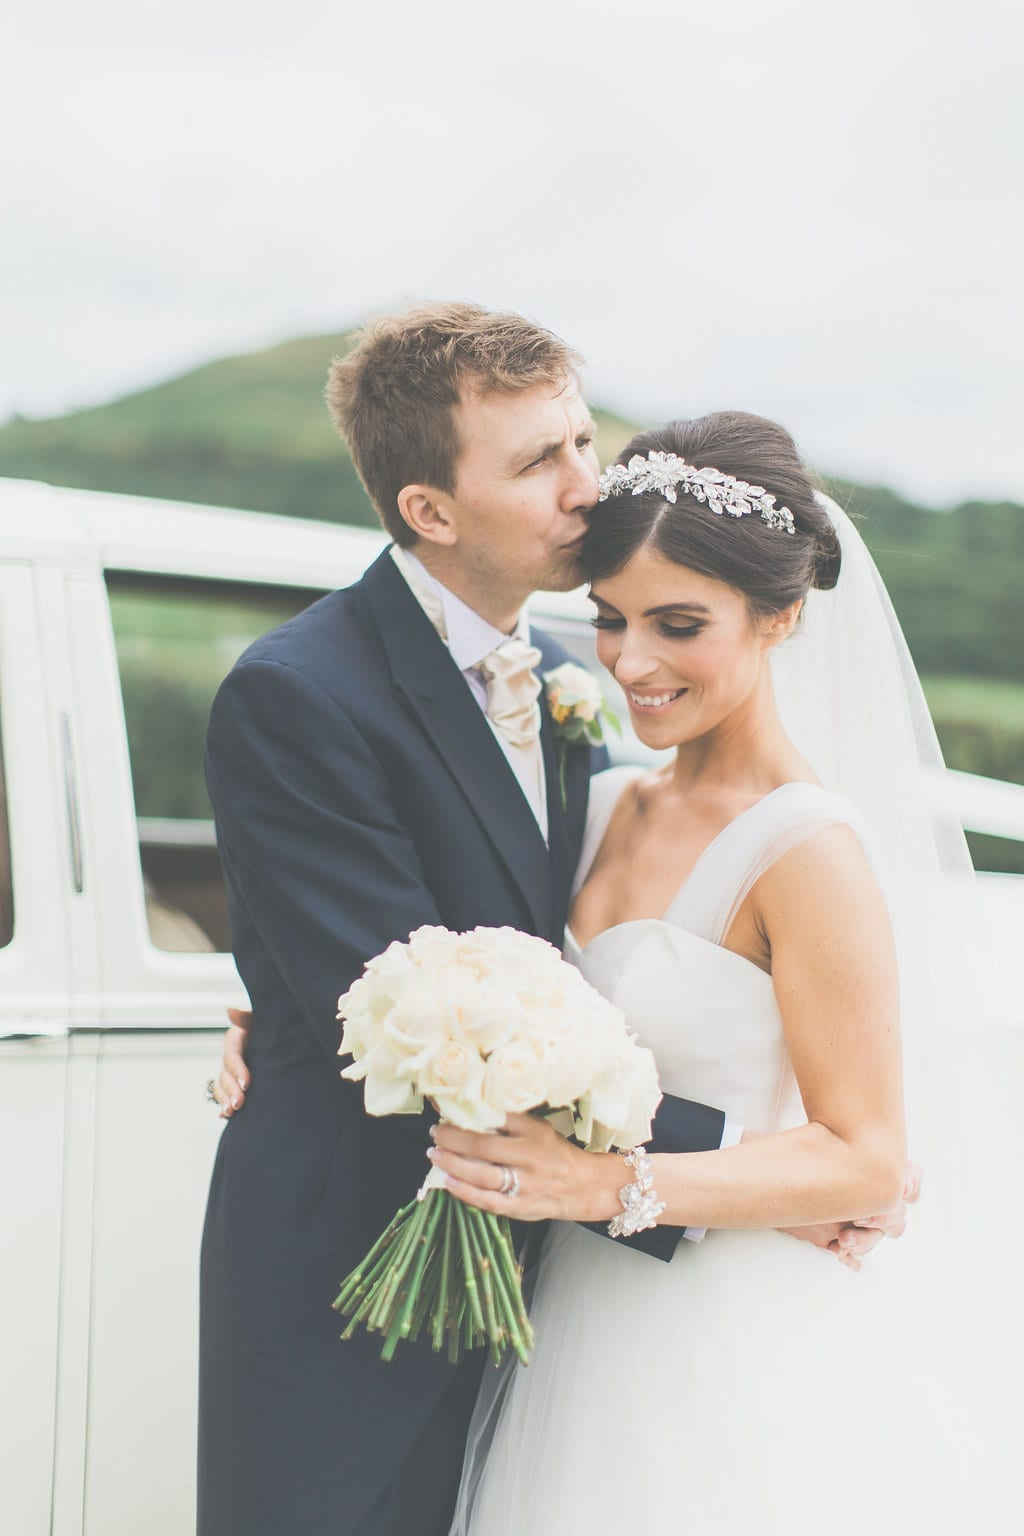 Real Wedding: Katy and Peter's Elegant and Personalised Wedding Day